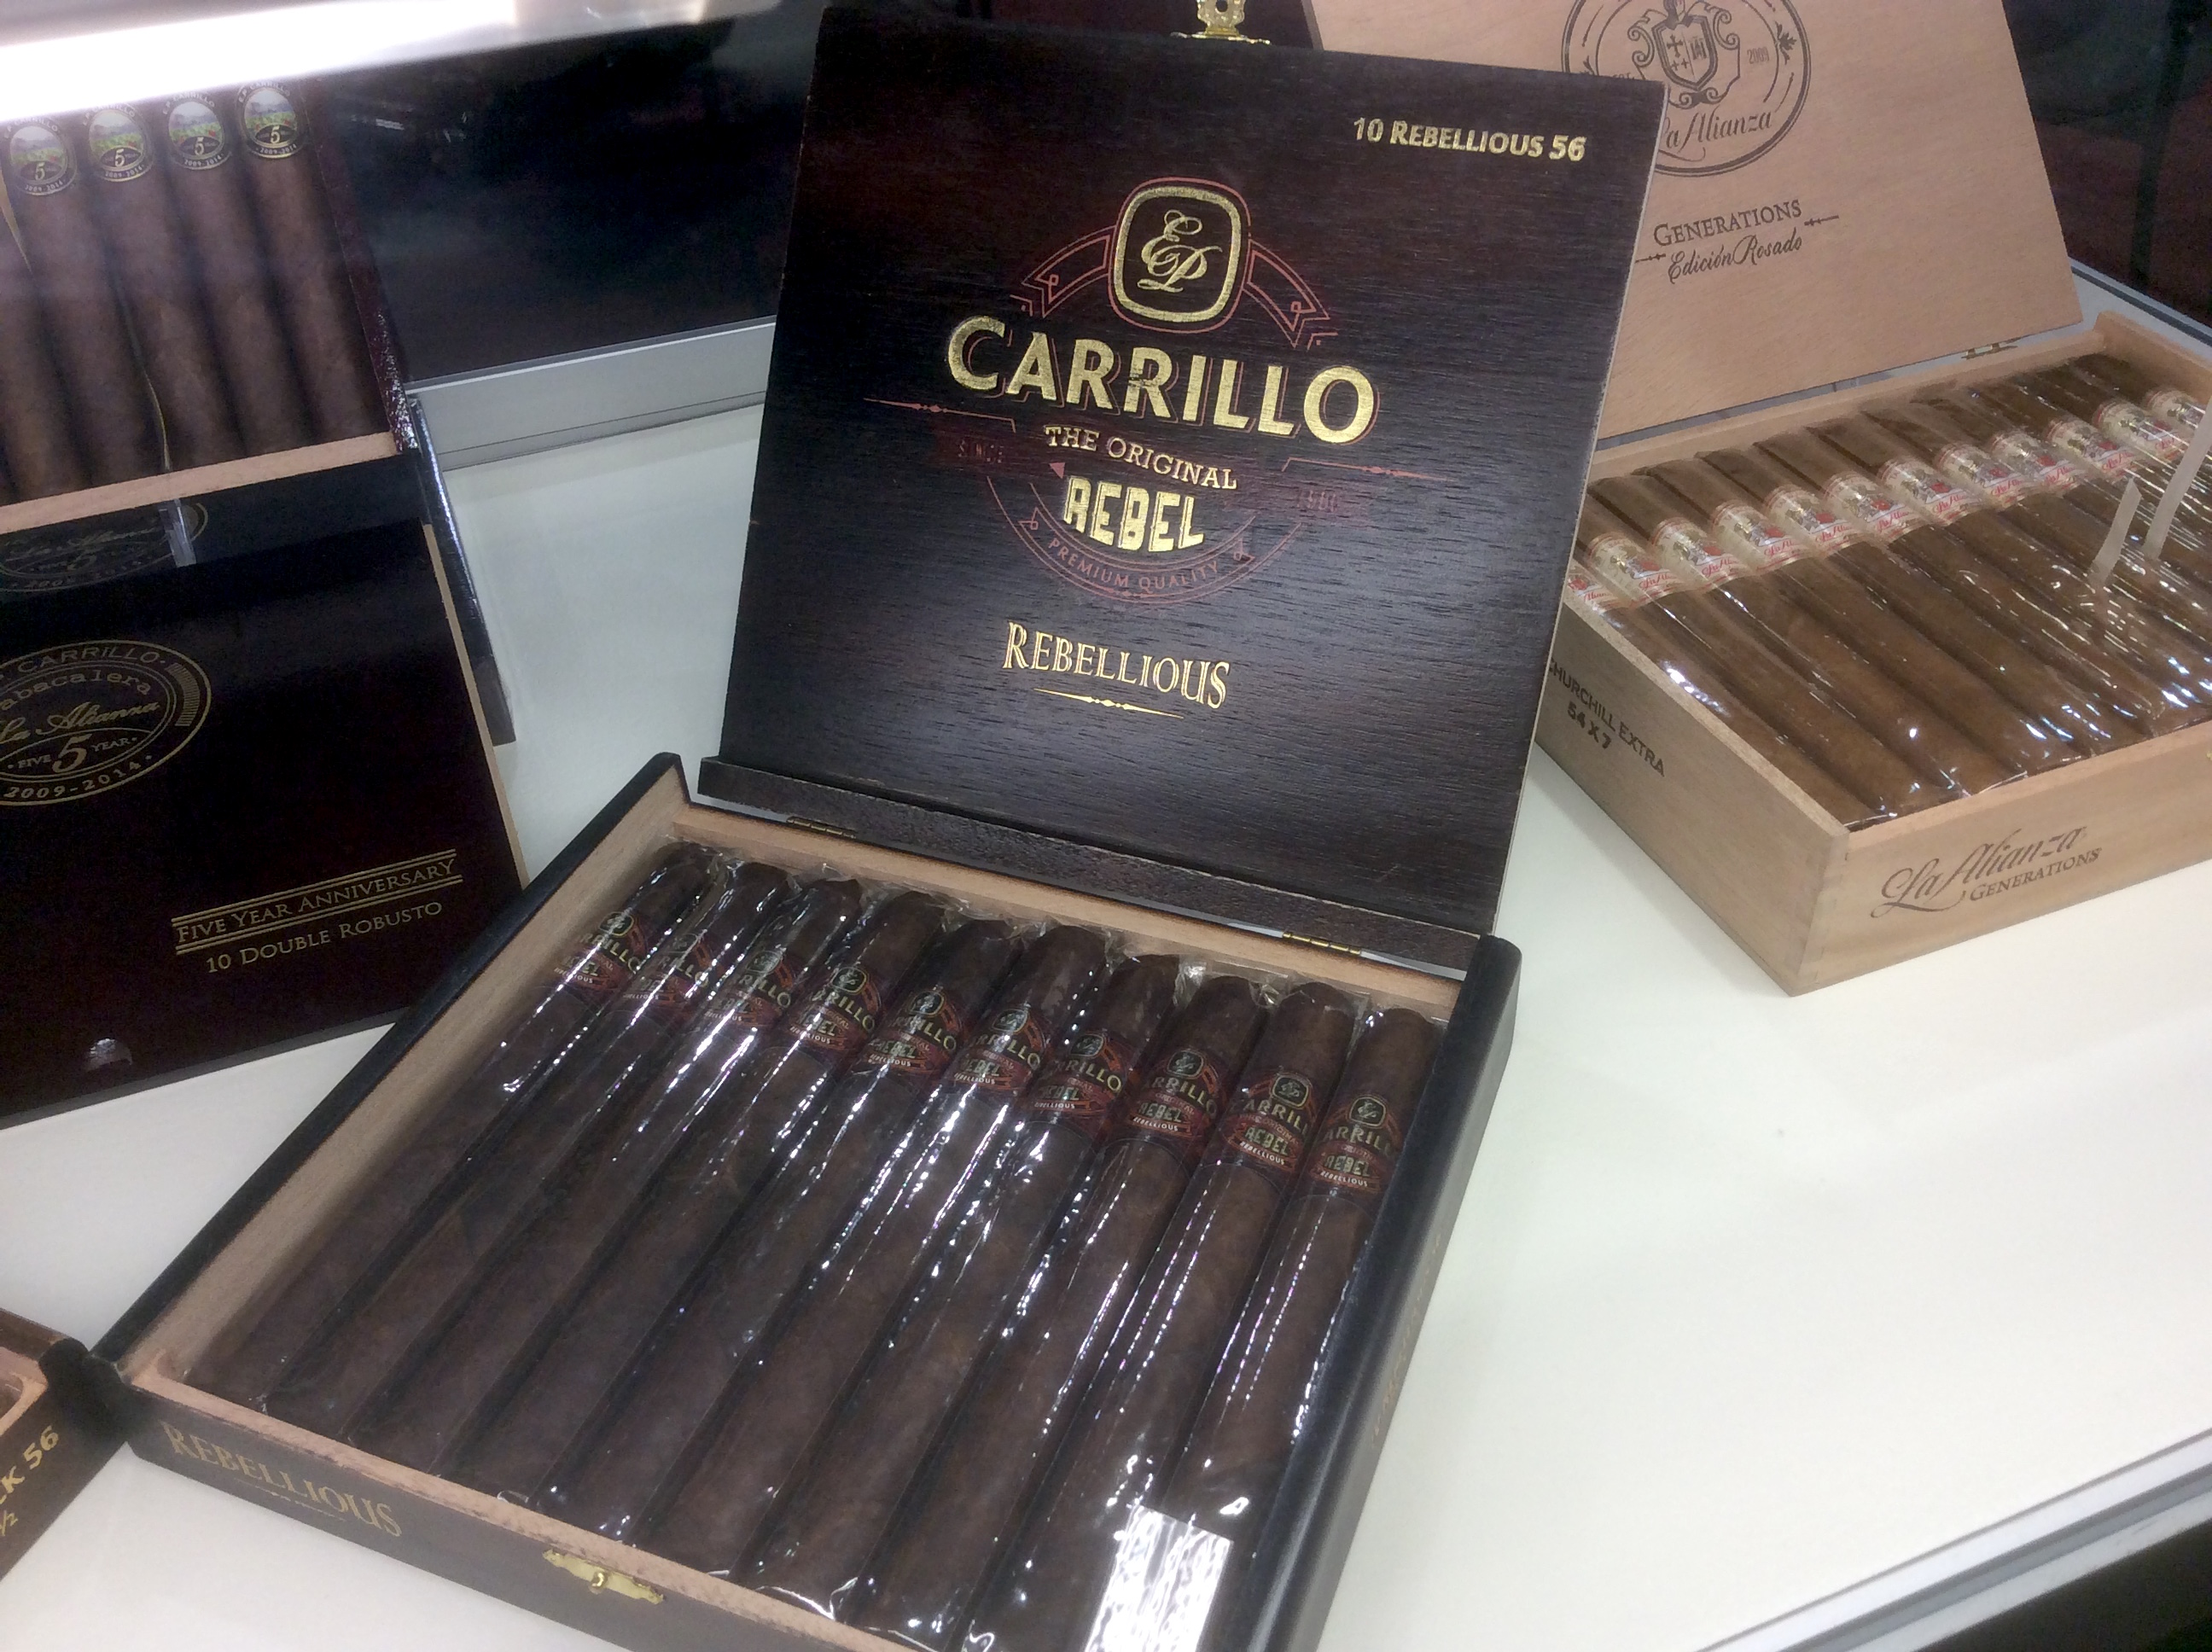 Cigar News: Original Rebel by E.P. Carrillo Launched at 2016 IPCPR